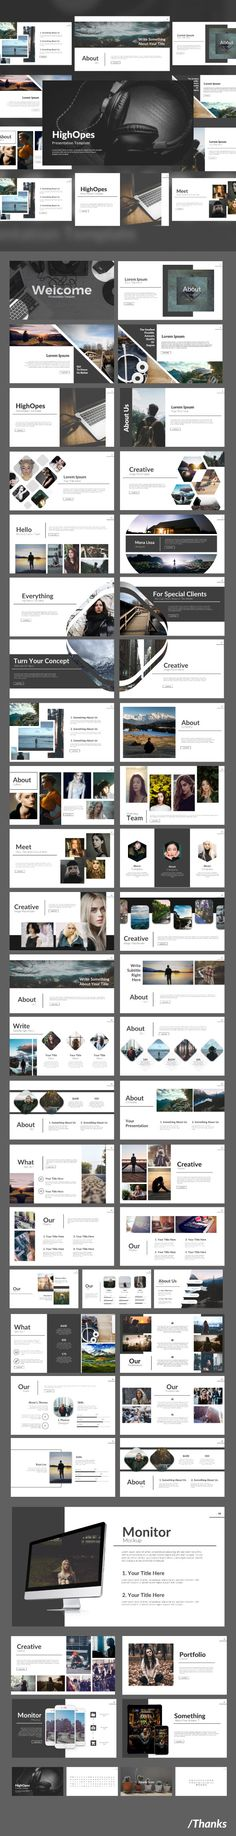 Highopes - Powerpoint Template - Business PowerPoint Templates